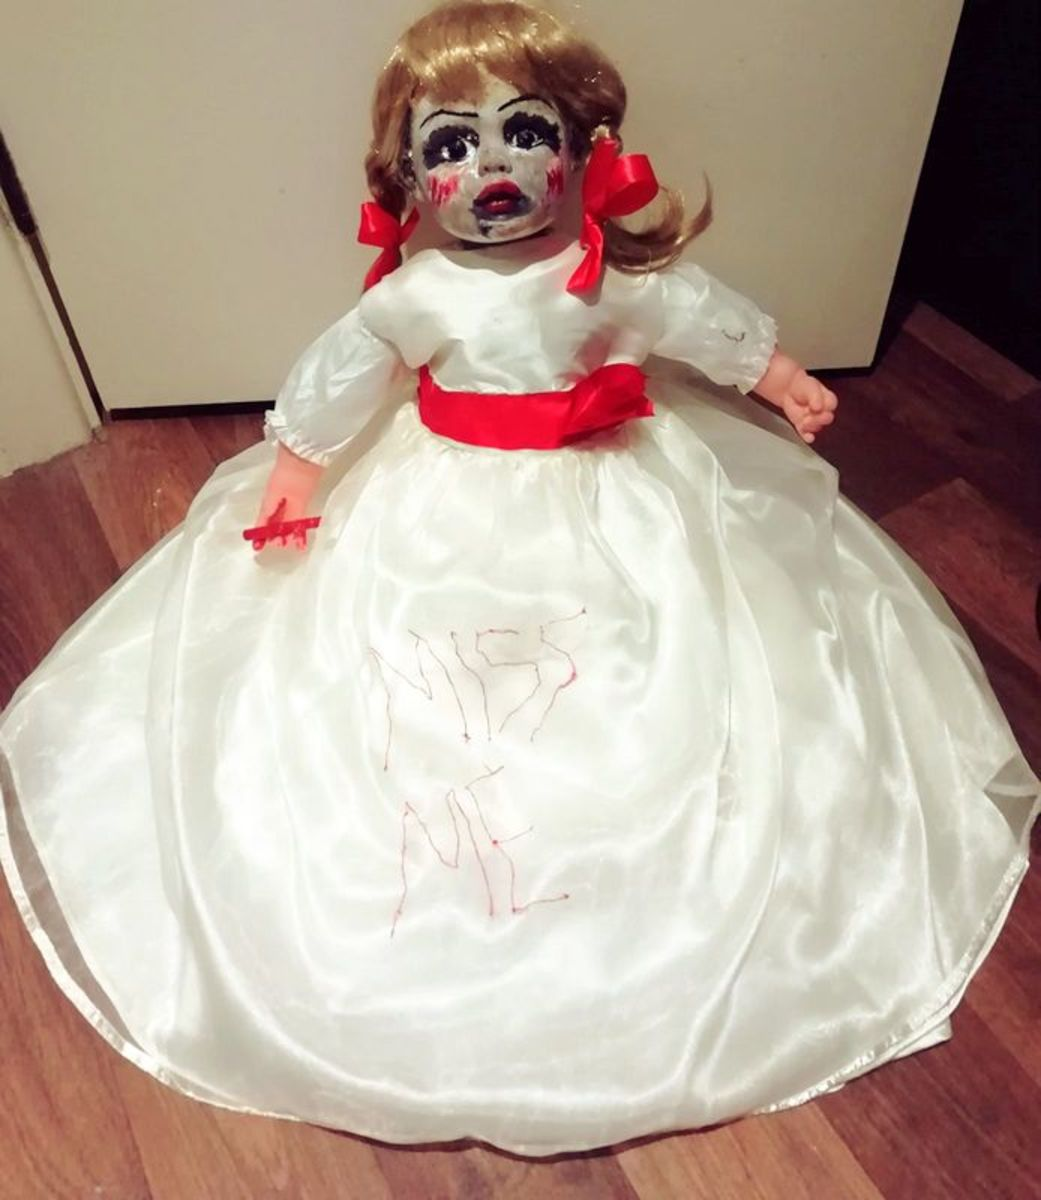 This is my completed Annabelle doll decoration.